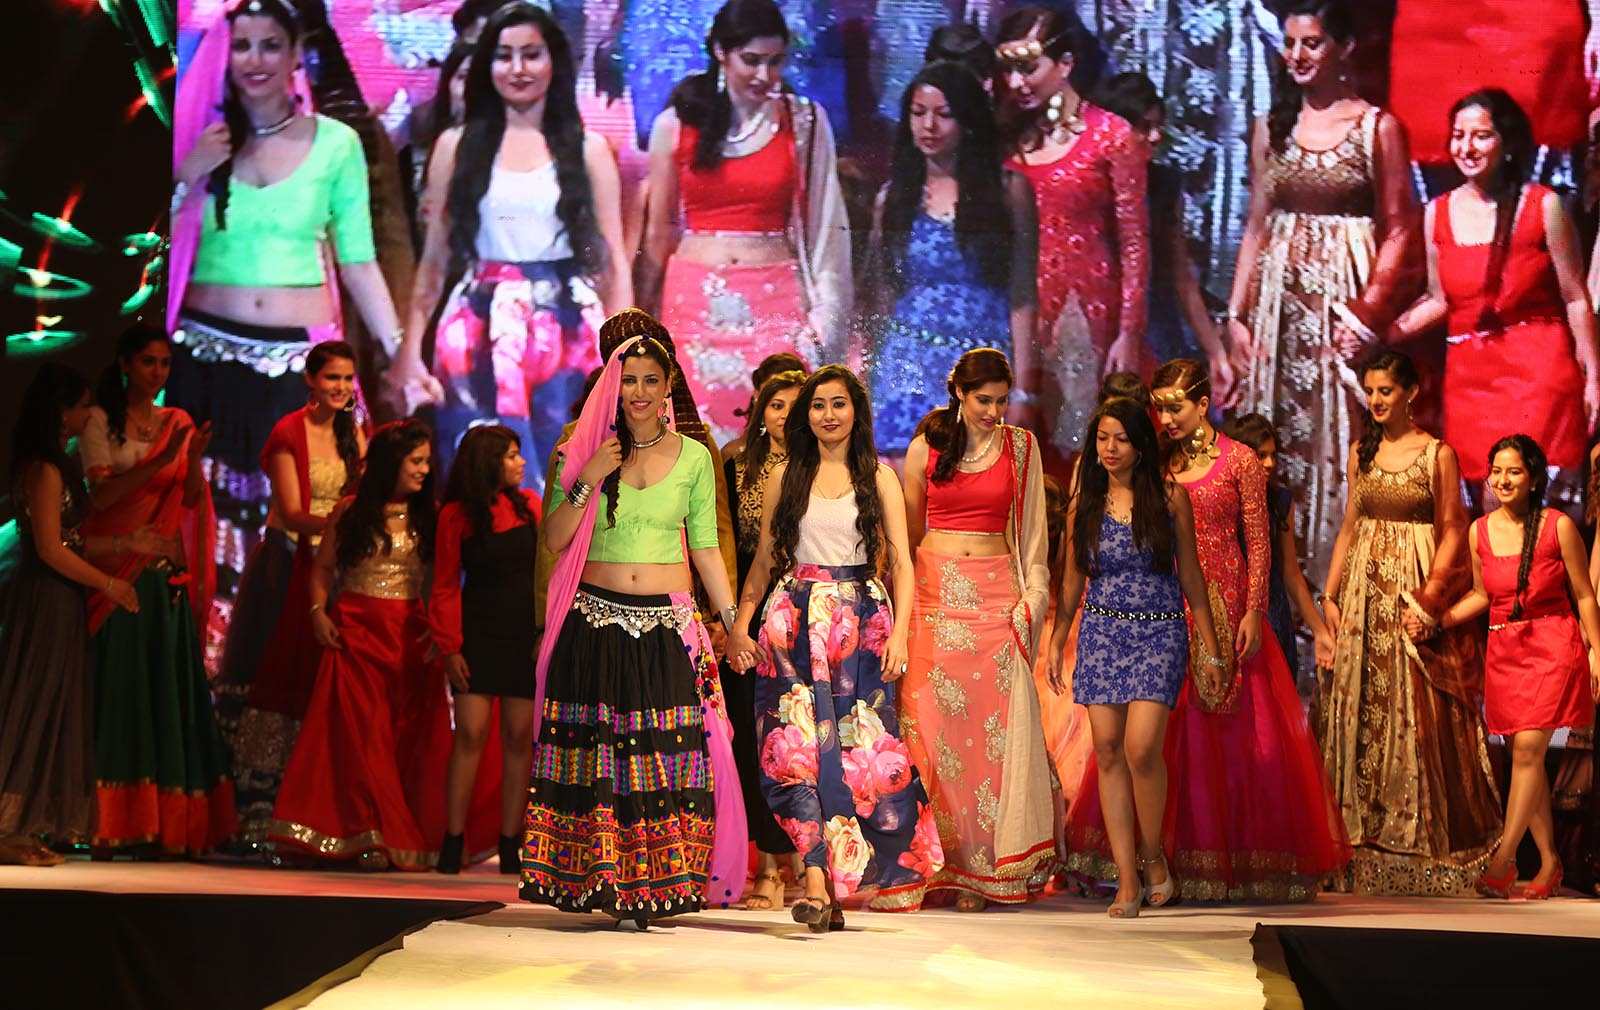 Sdps Women S College Indore My First College List Of Top Colleges In India Universities Courses In India Exams Career Options